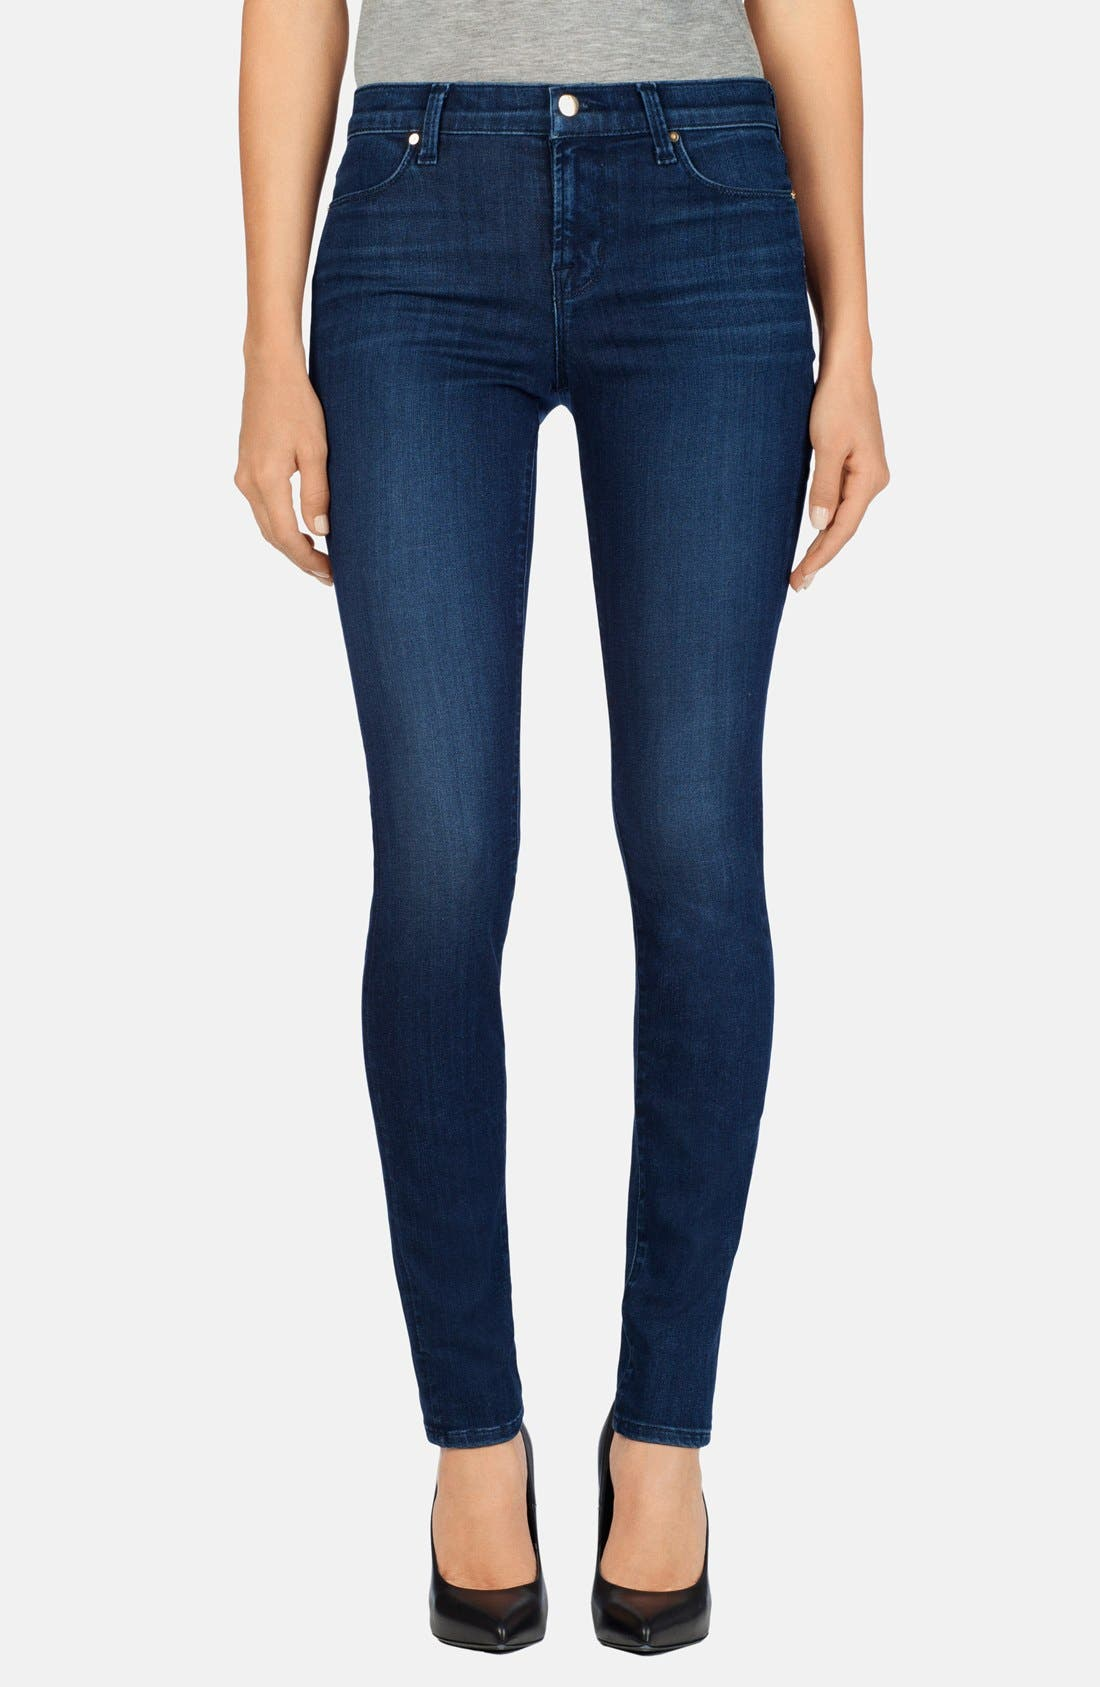 '620' Mid Rise Super Skinny Jeans,                         Main,                         color, Fix